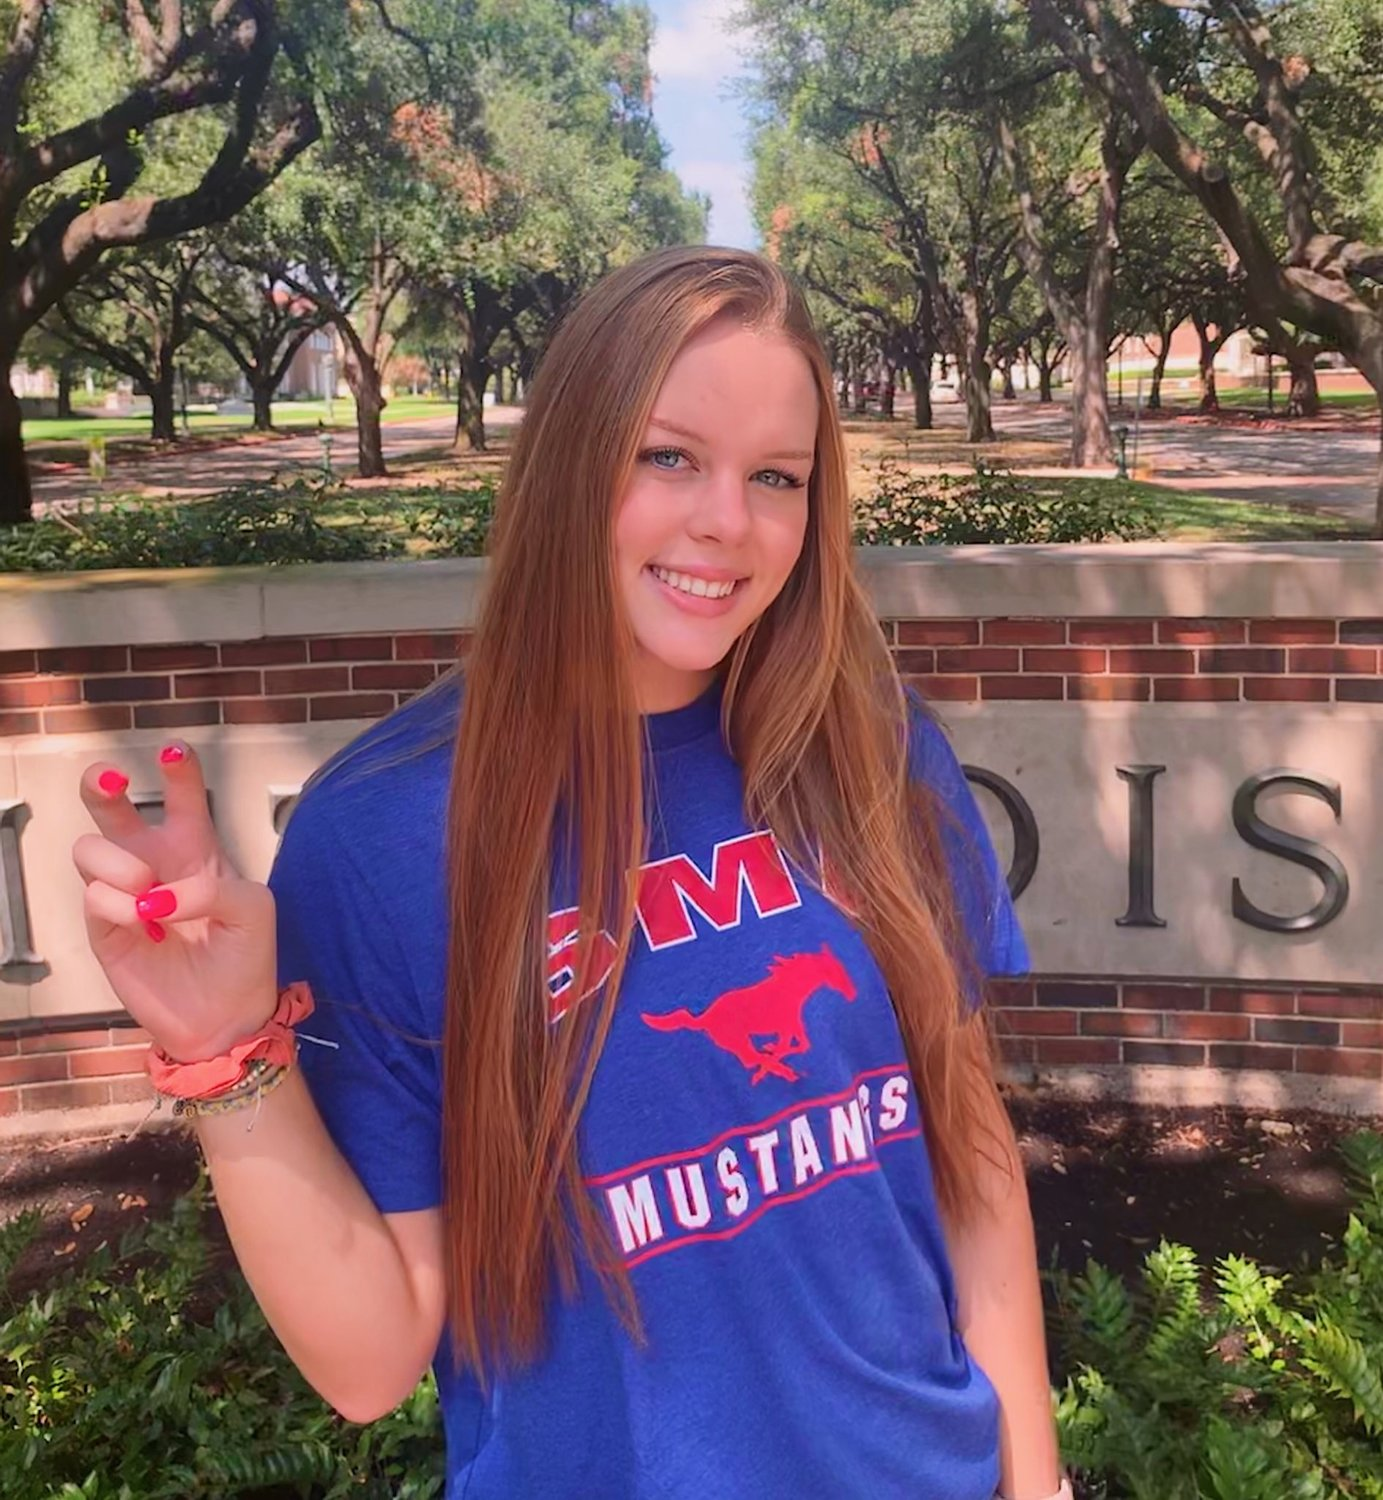 Seven Lakes junior setter Casey Batenhorst verbally committed to continue her volleyball career at SMU on Sept. 10.